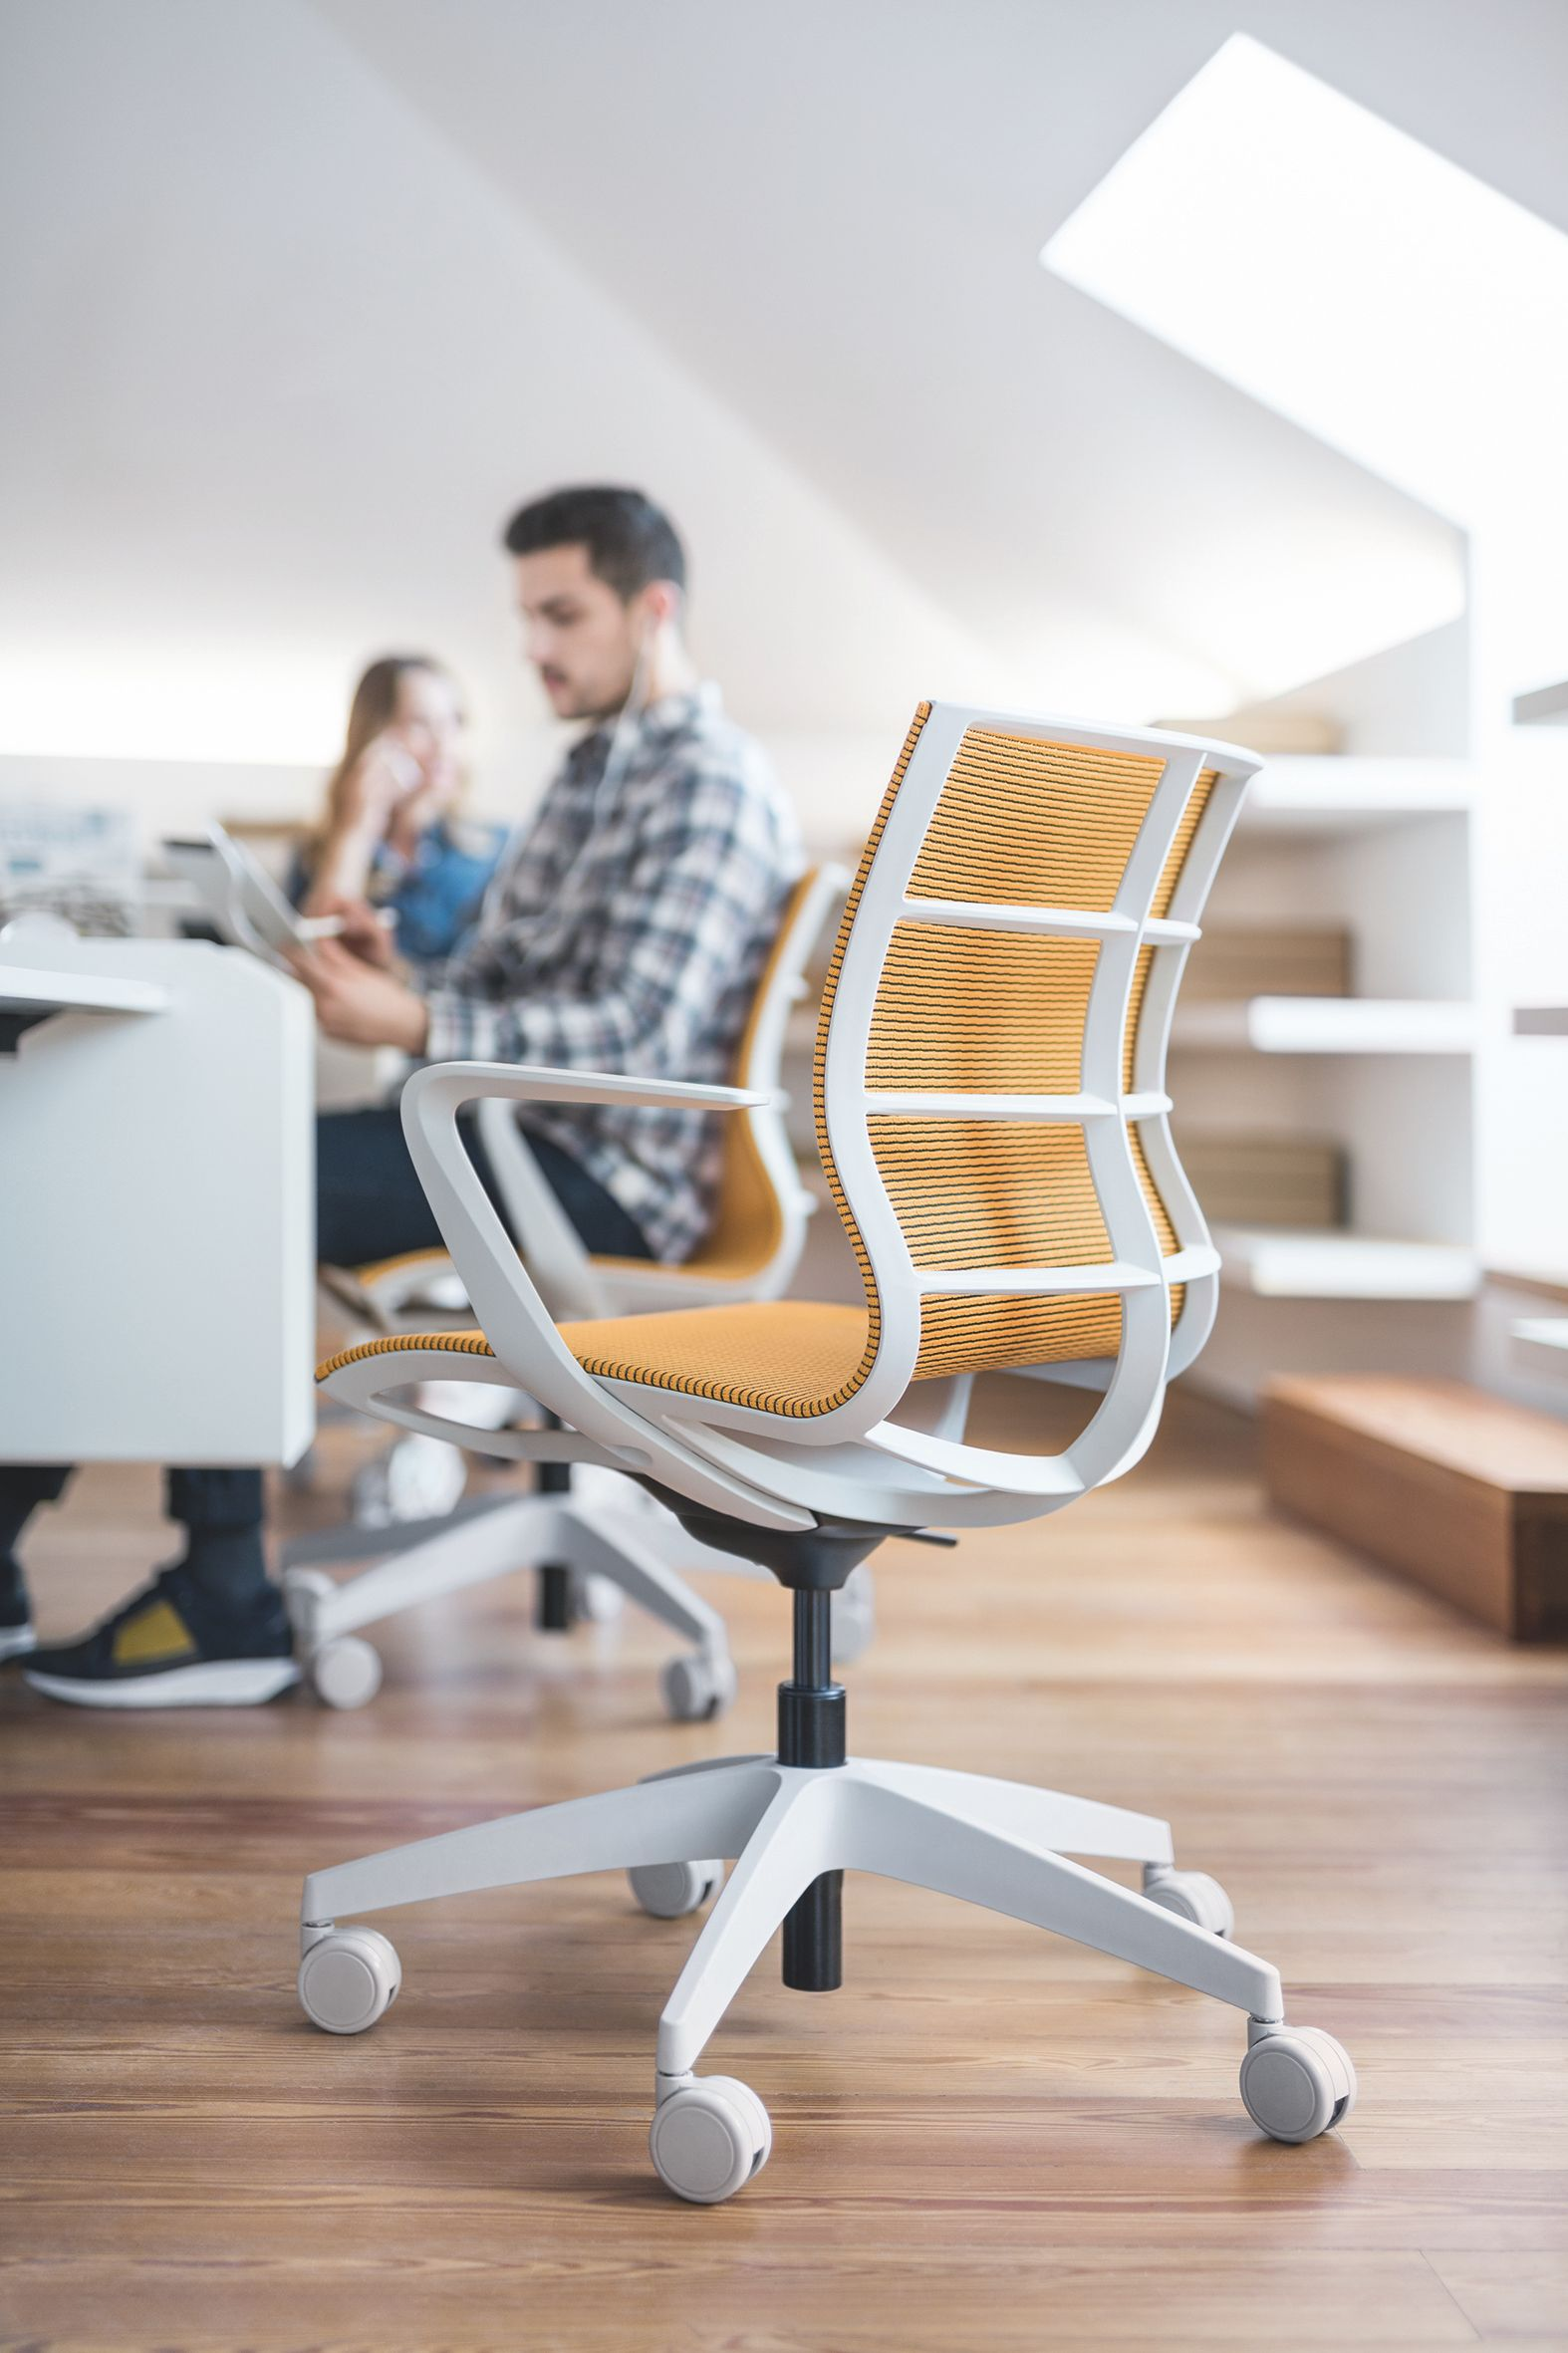 Basketball, Chairs, Color, Office Furniture, Design